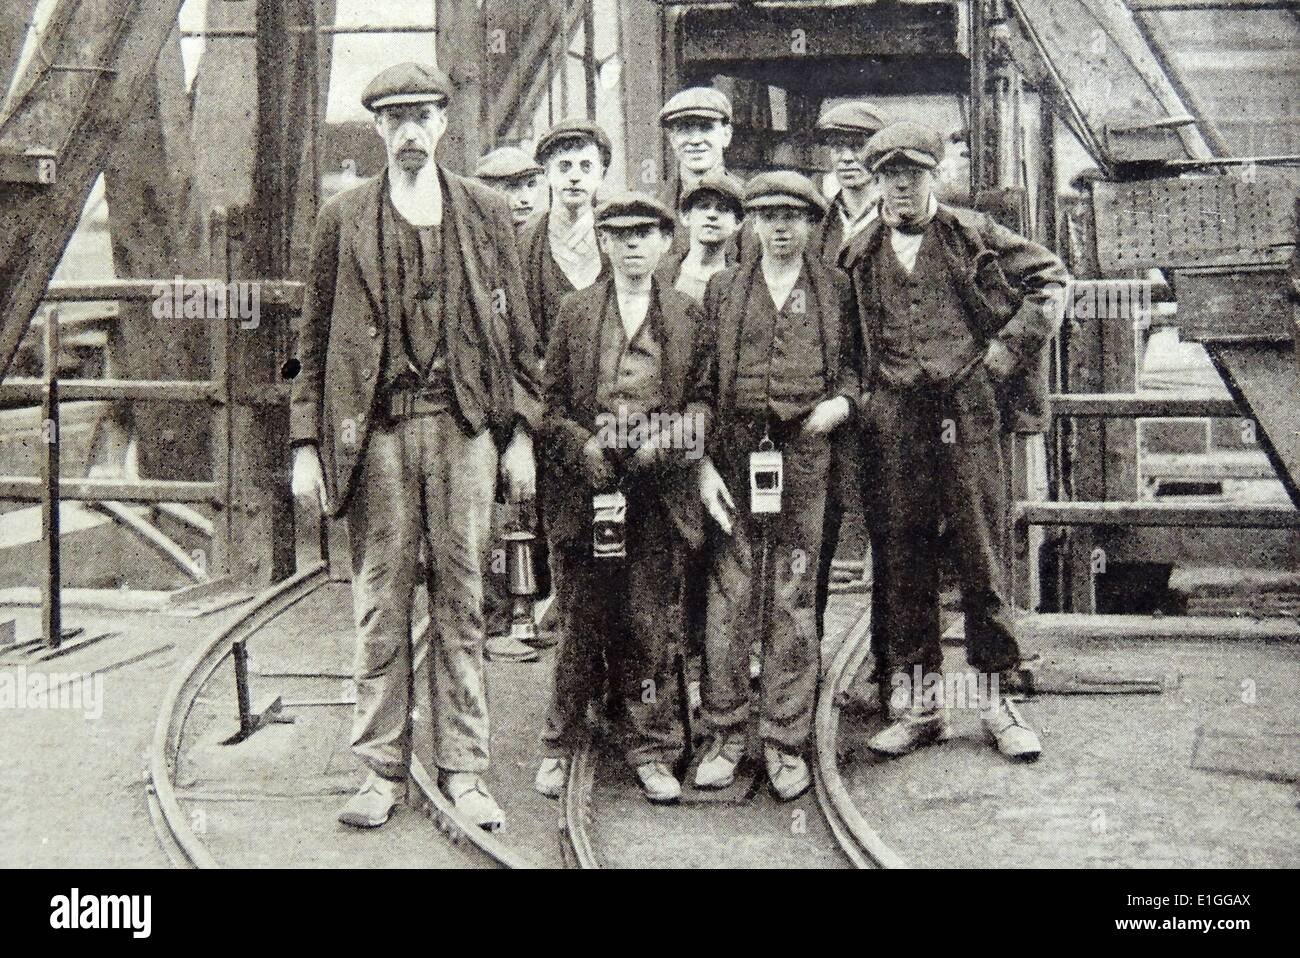 Photograpgh of Pit Workers - Stock Image